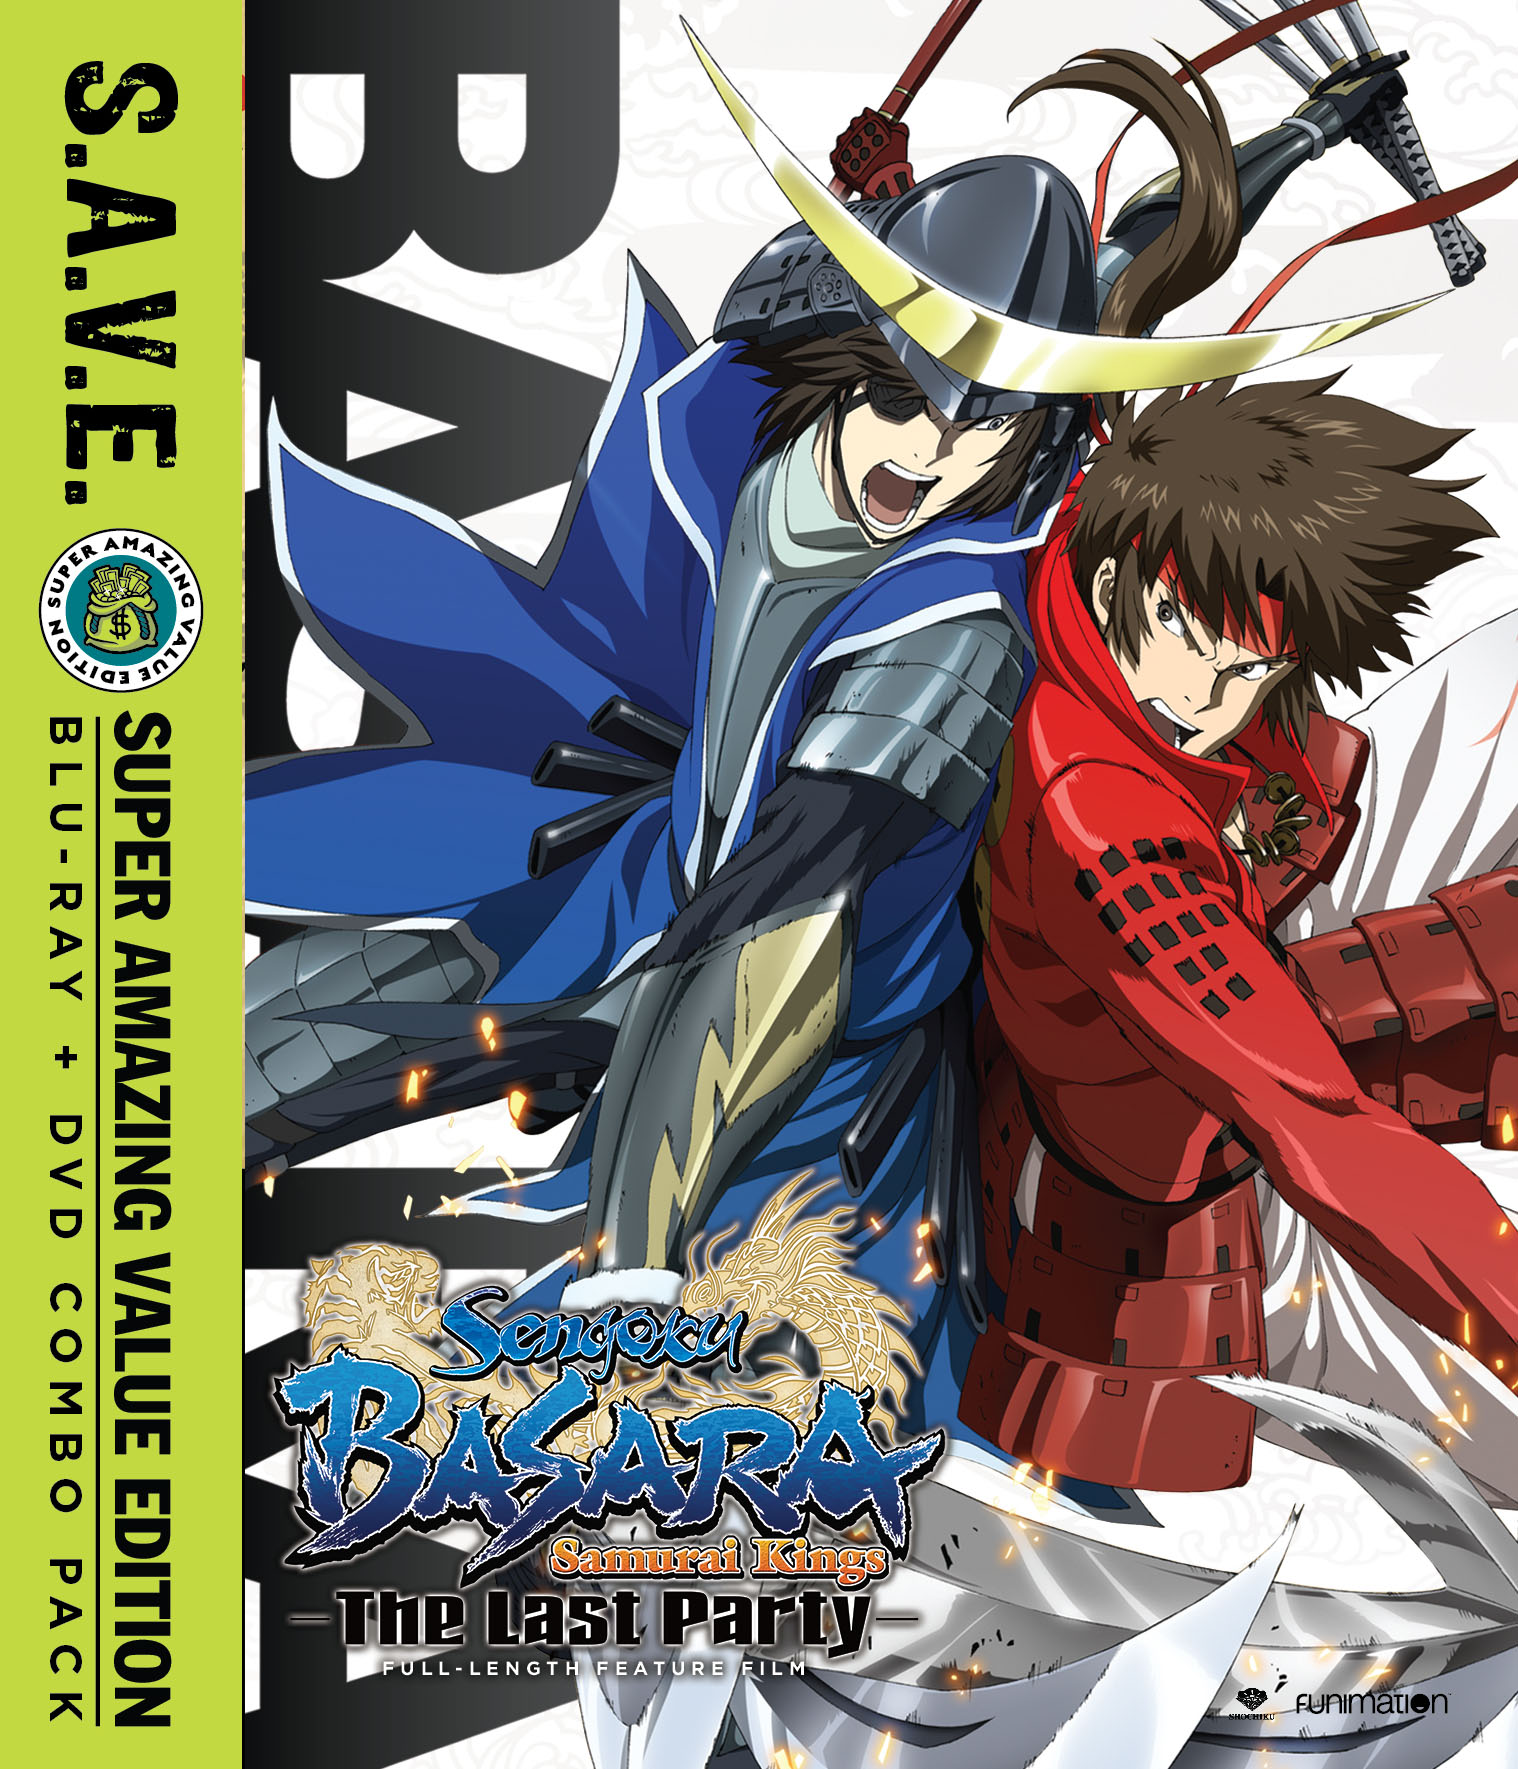 Sengoku Basara Samurai Kings Movie The Last Party Blu-ray/DVD SAVE Edition 704400016264